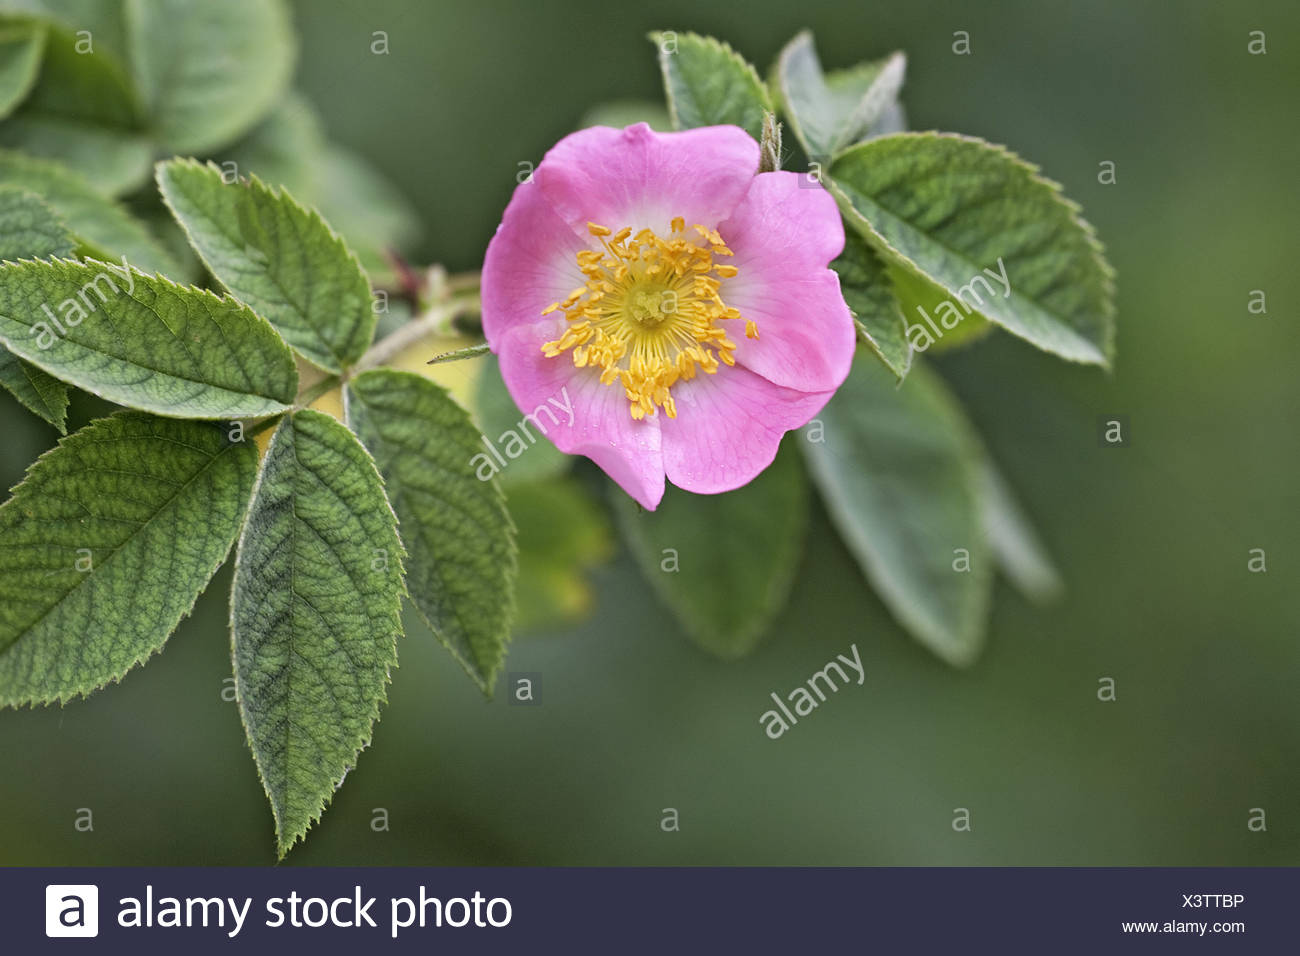 Cotswolds dog rose gloucestershire rosa vulgaris abundant colour cotswolds dog rose gloucestershire rosa vulgaris abundant colour flowers hedgerow hedgerows leaves petals pink rose family mightylinksfo